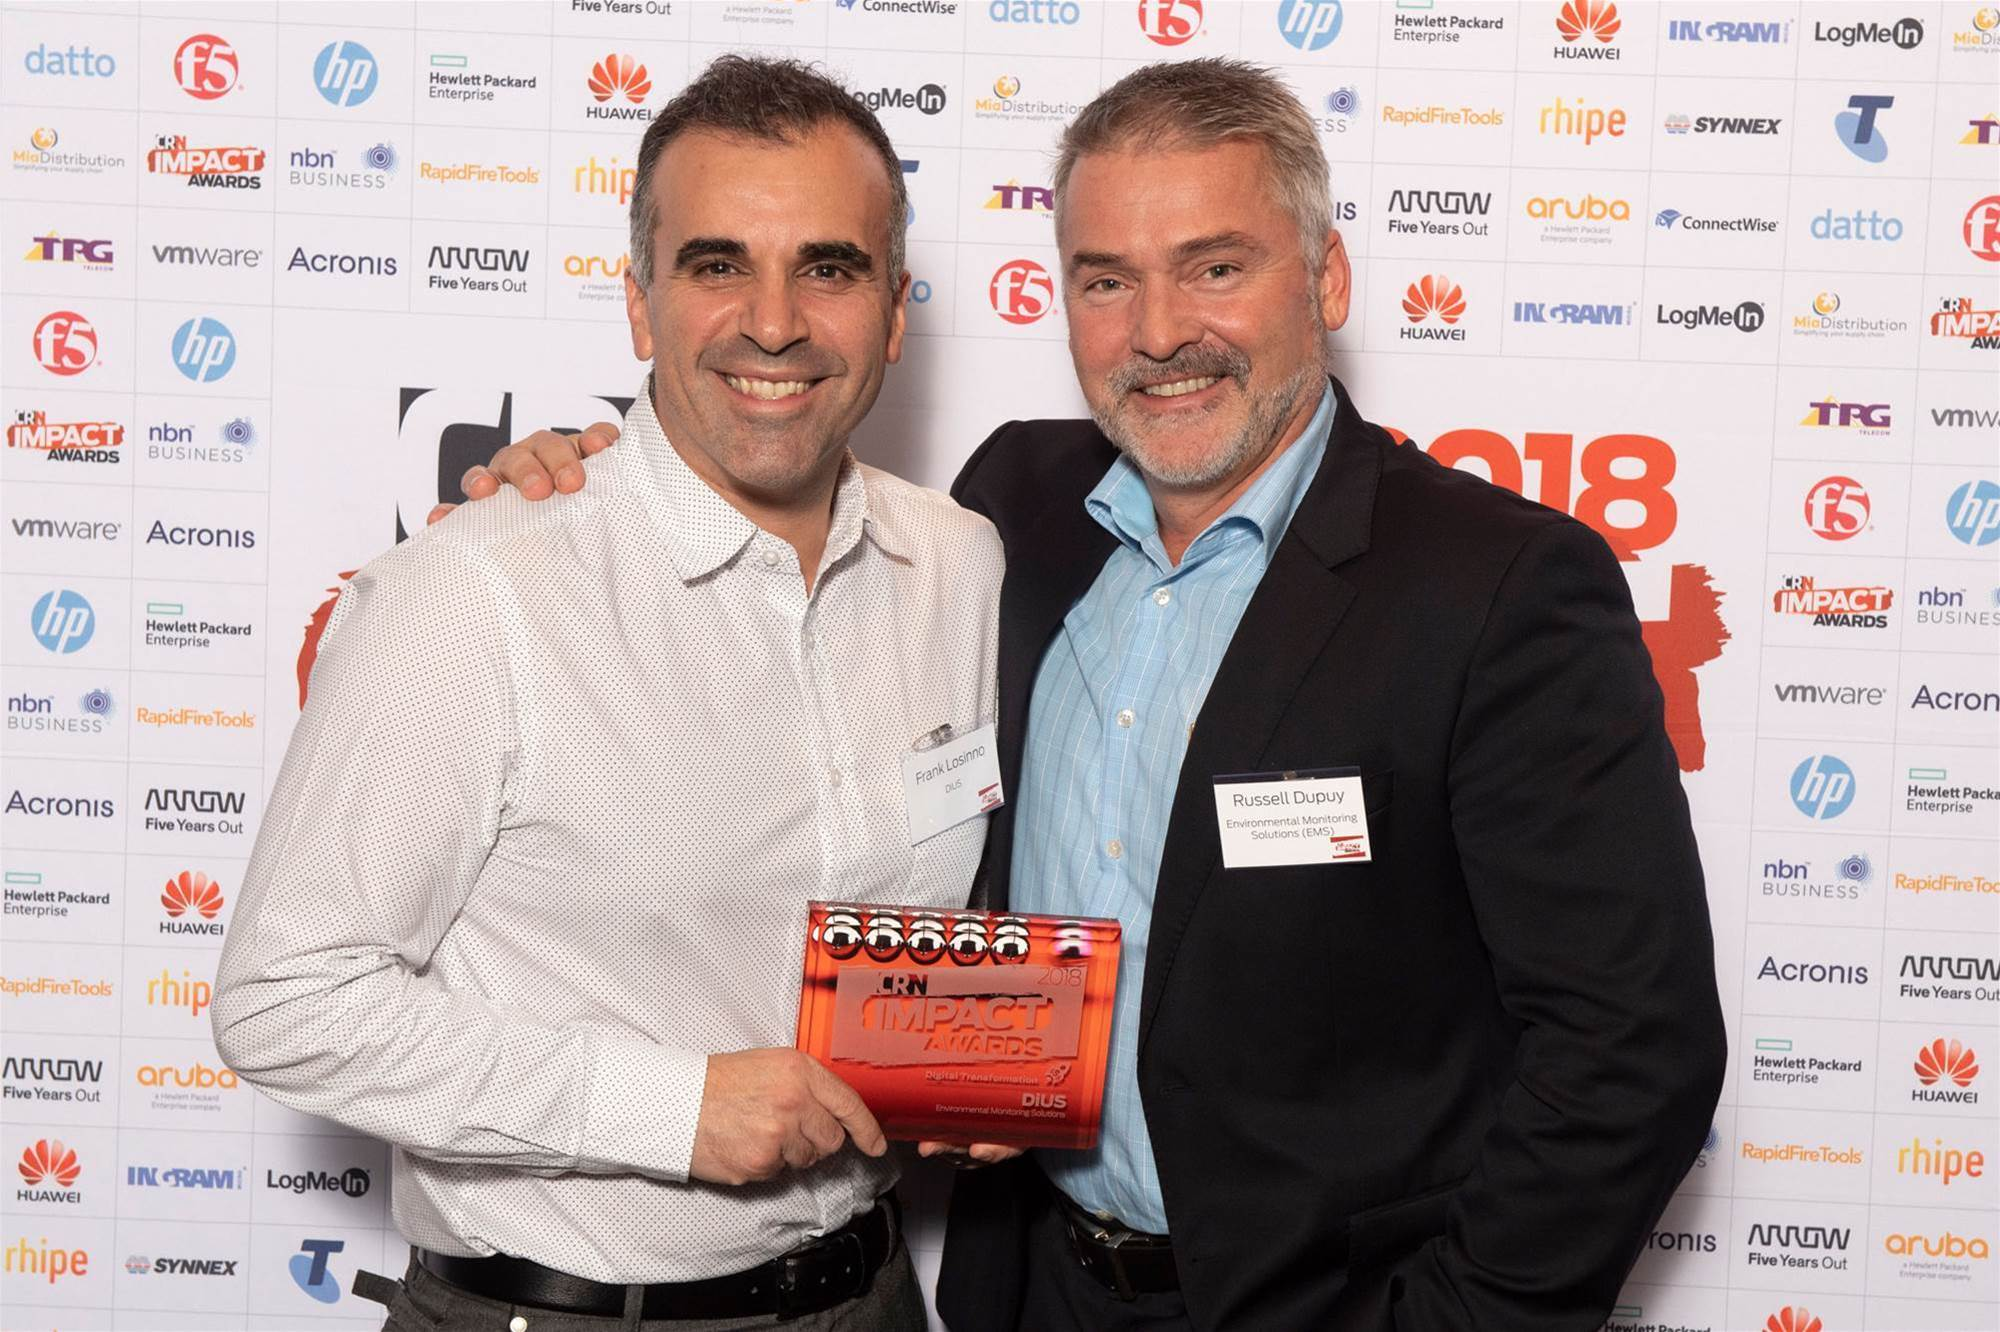 DiUS, Thomas Duryea Logicalis, Outware Mobile and more win at the 2018 CRN Impact Awards